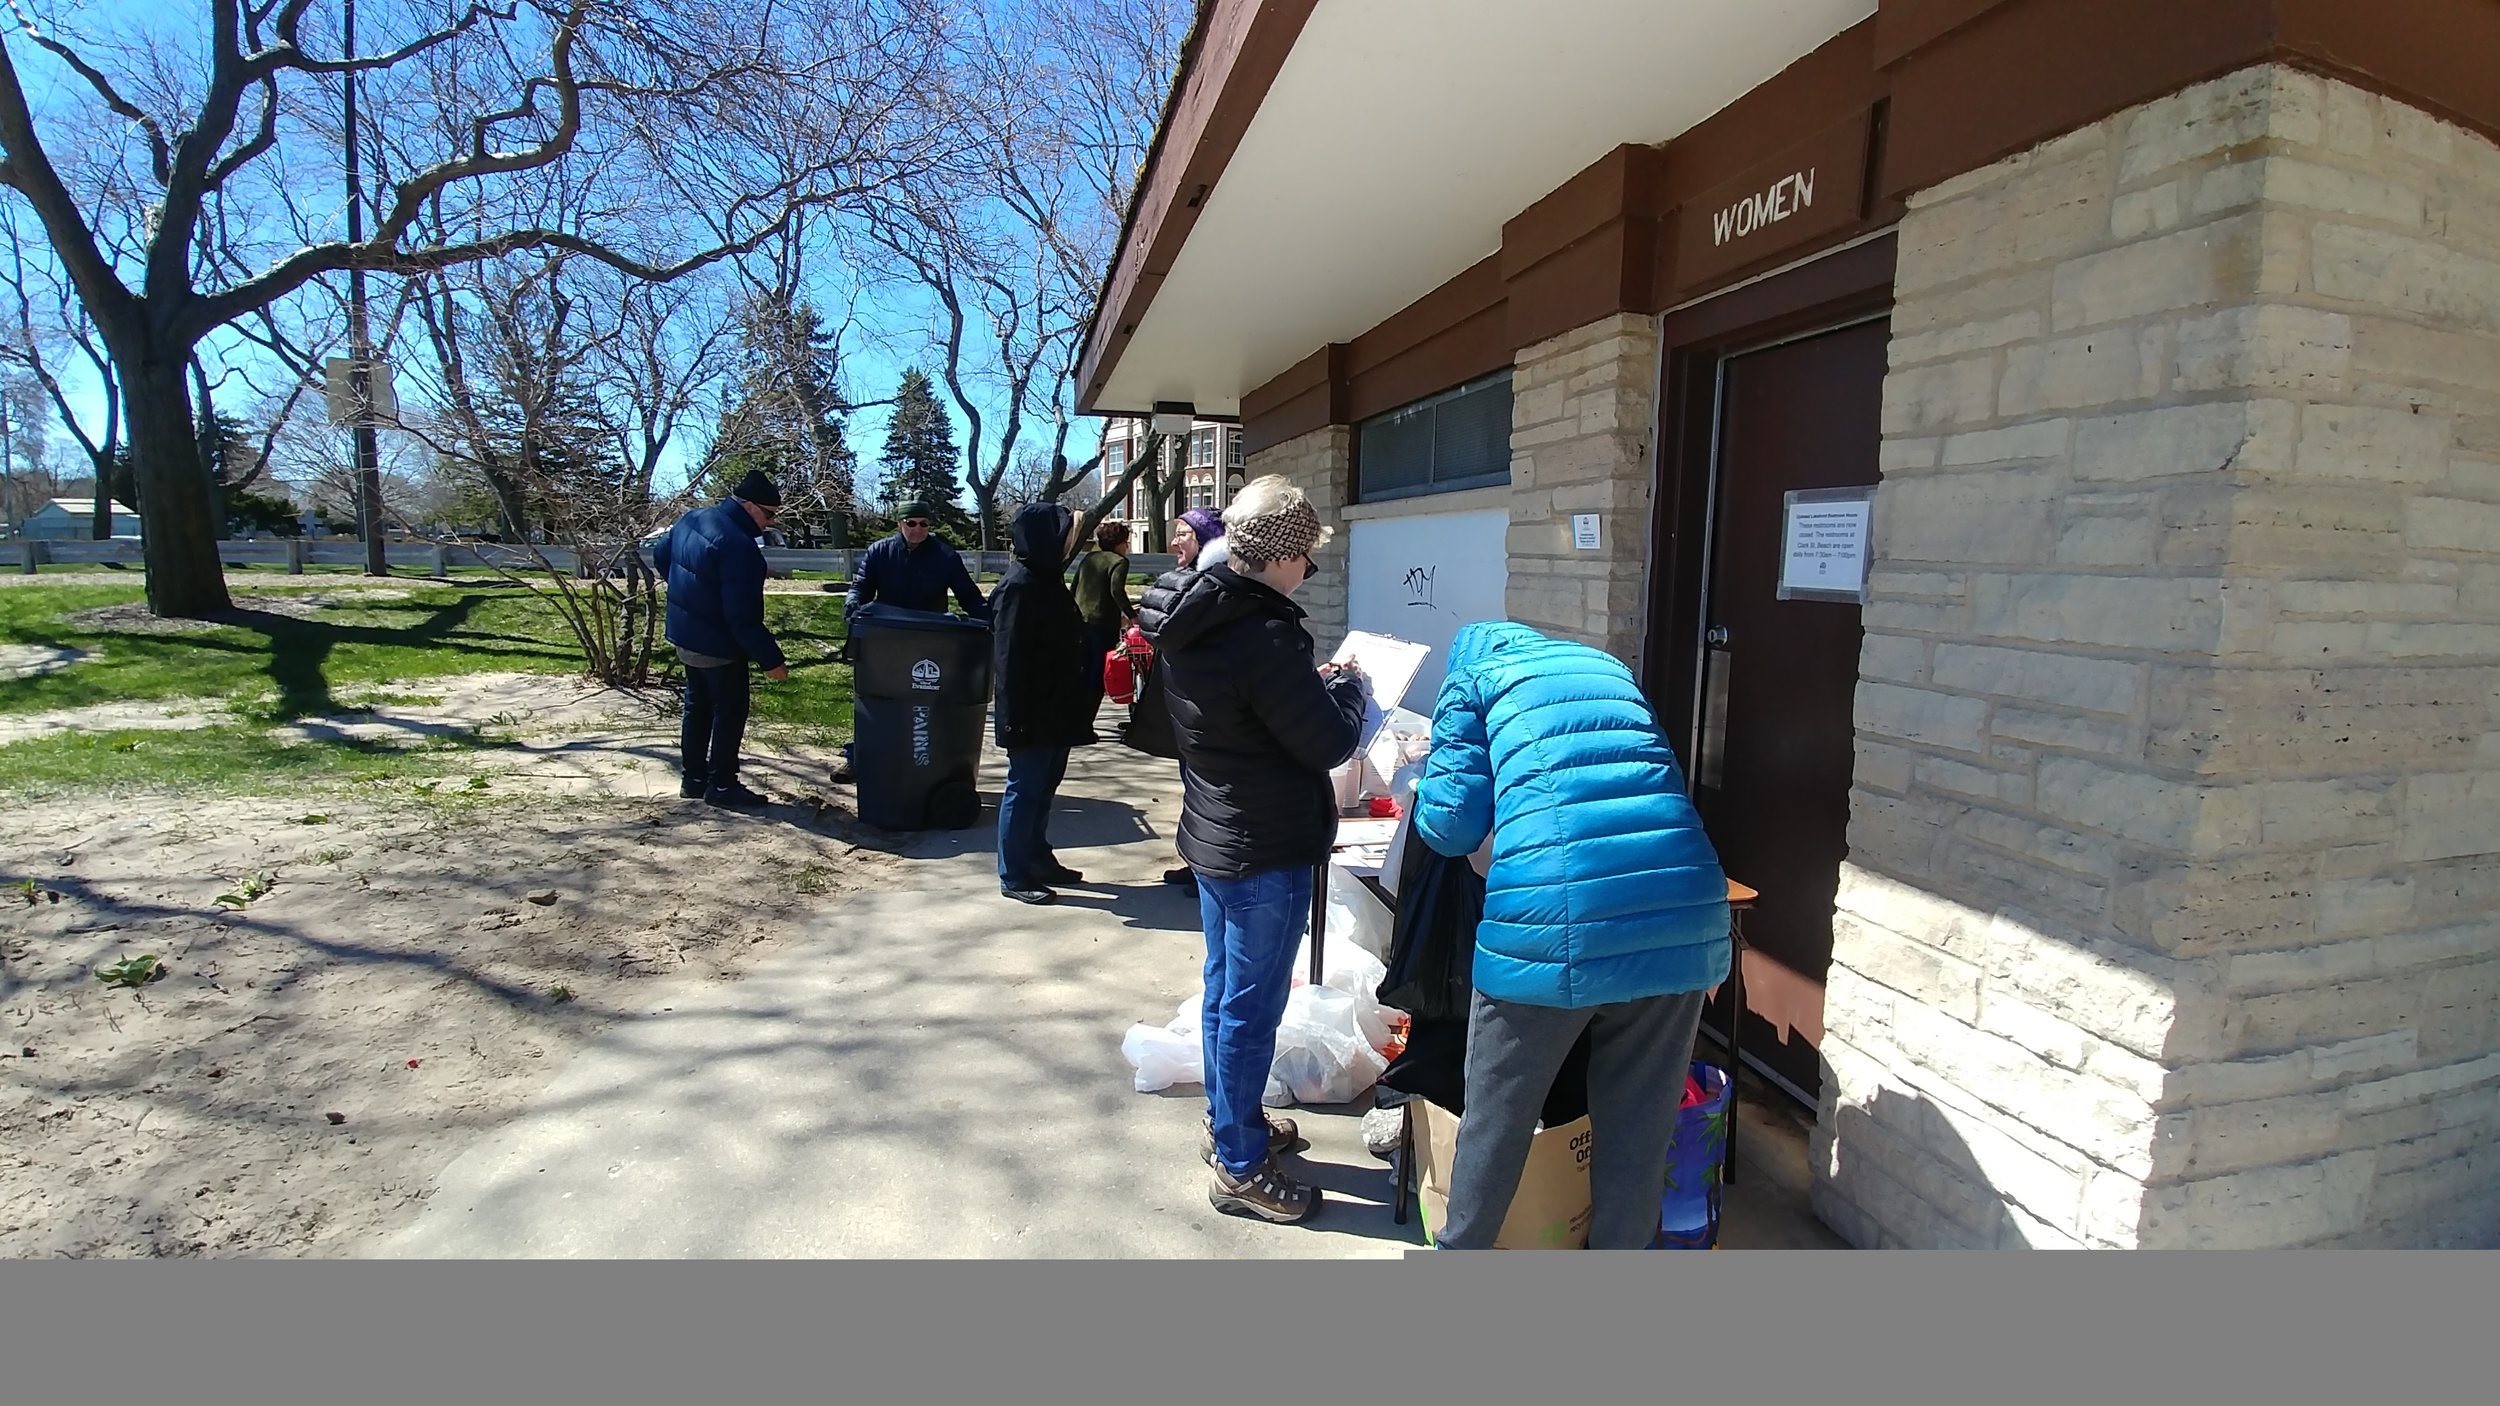 On April 20, 2019, SEA hosted an Adopt-a-Beach event at South Boulevard Beach. On this day, neighbors joined together to collect 23 pounds of litter. Litter data collected will be used by the Alliance for the Great Lakes to prevent pollution and make positive changes to protect our beaches and coasts.